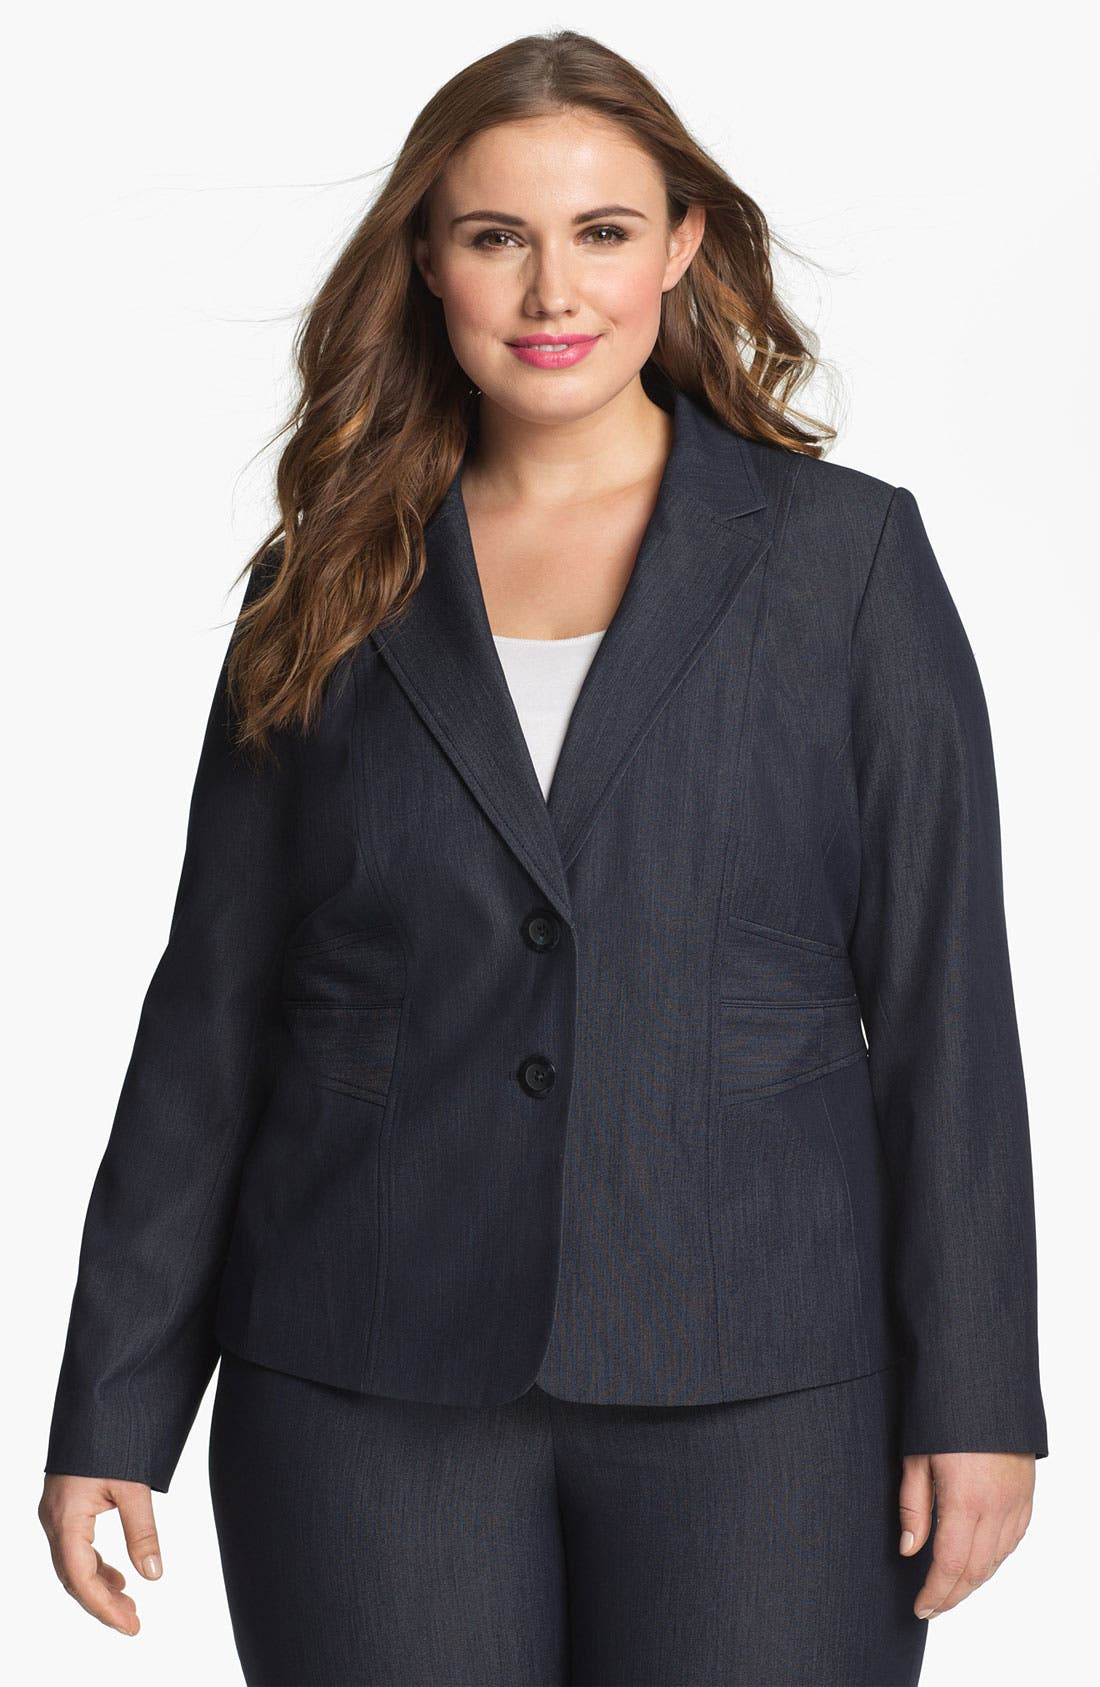 Alternate Image 1 Selected - Sejour Seamed Suit Jacket (Plus Size)